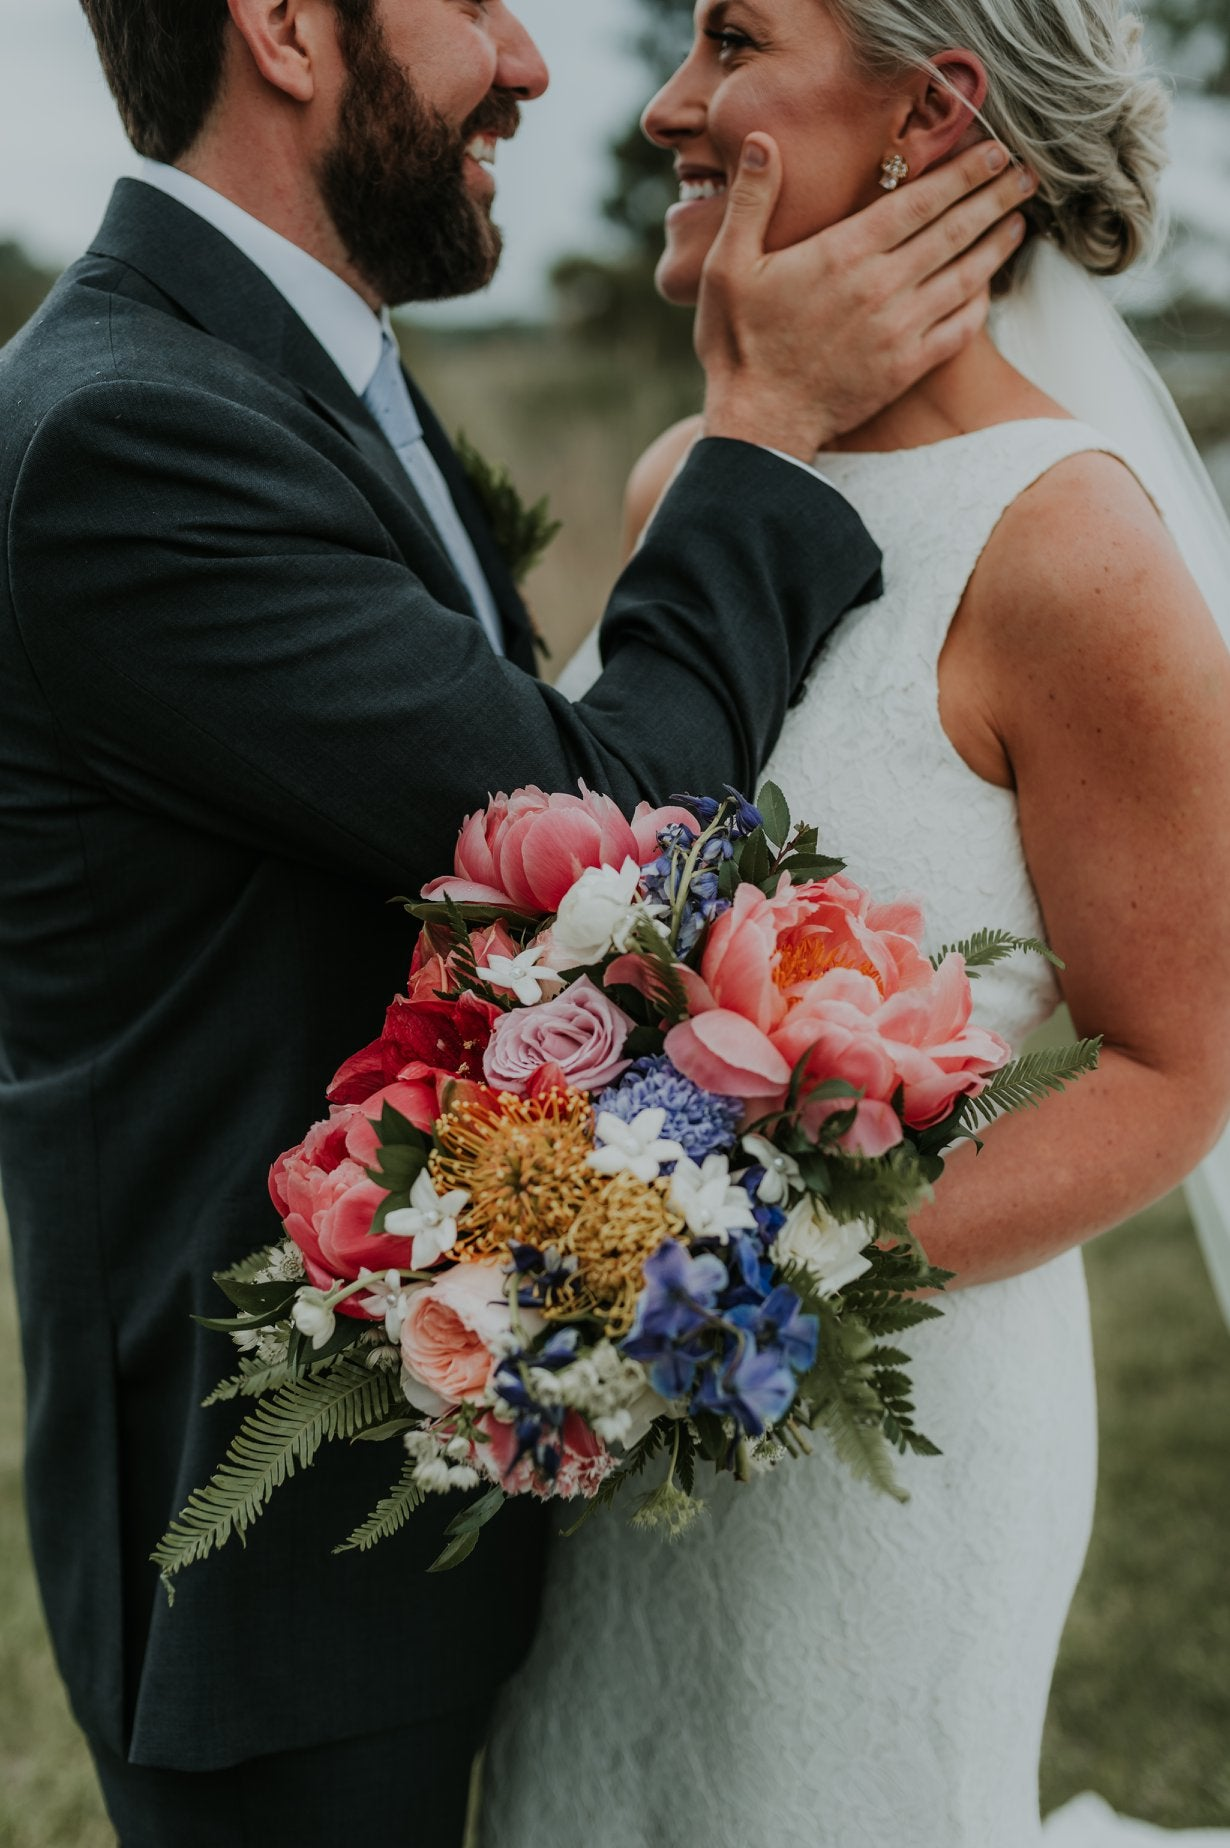 little miss lovely floral design // leah adkins photography // bayside golf resort wedding selbyville, de // ocean city maryland wedding florist